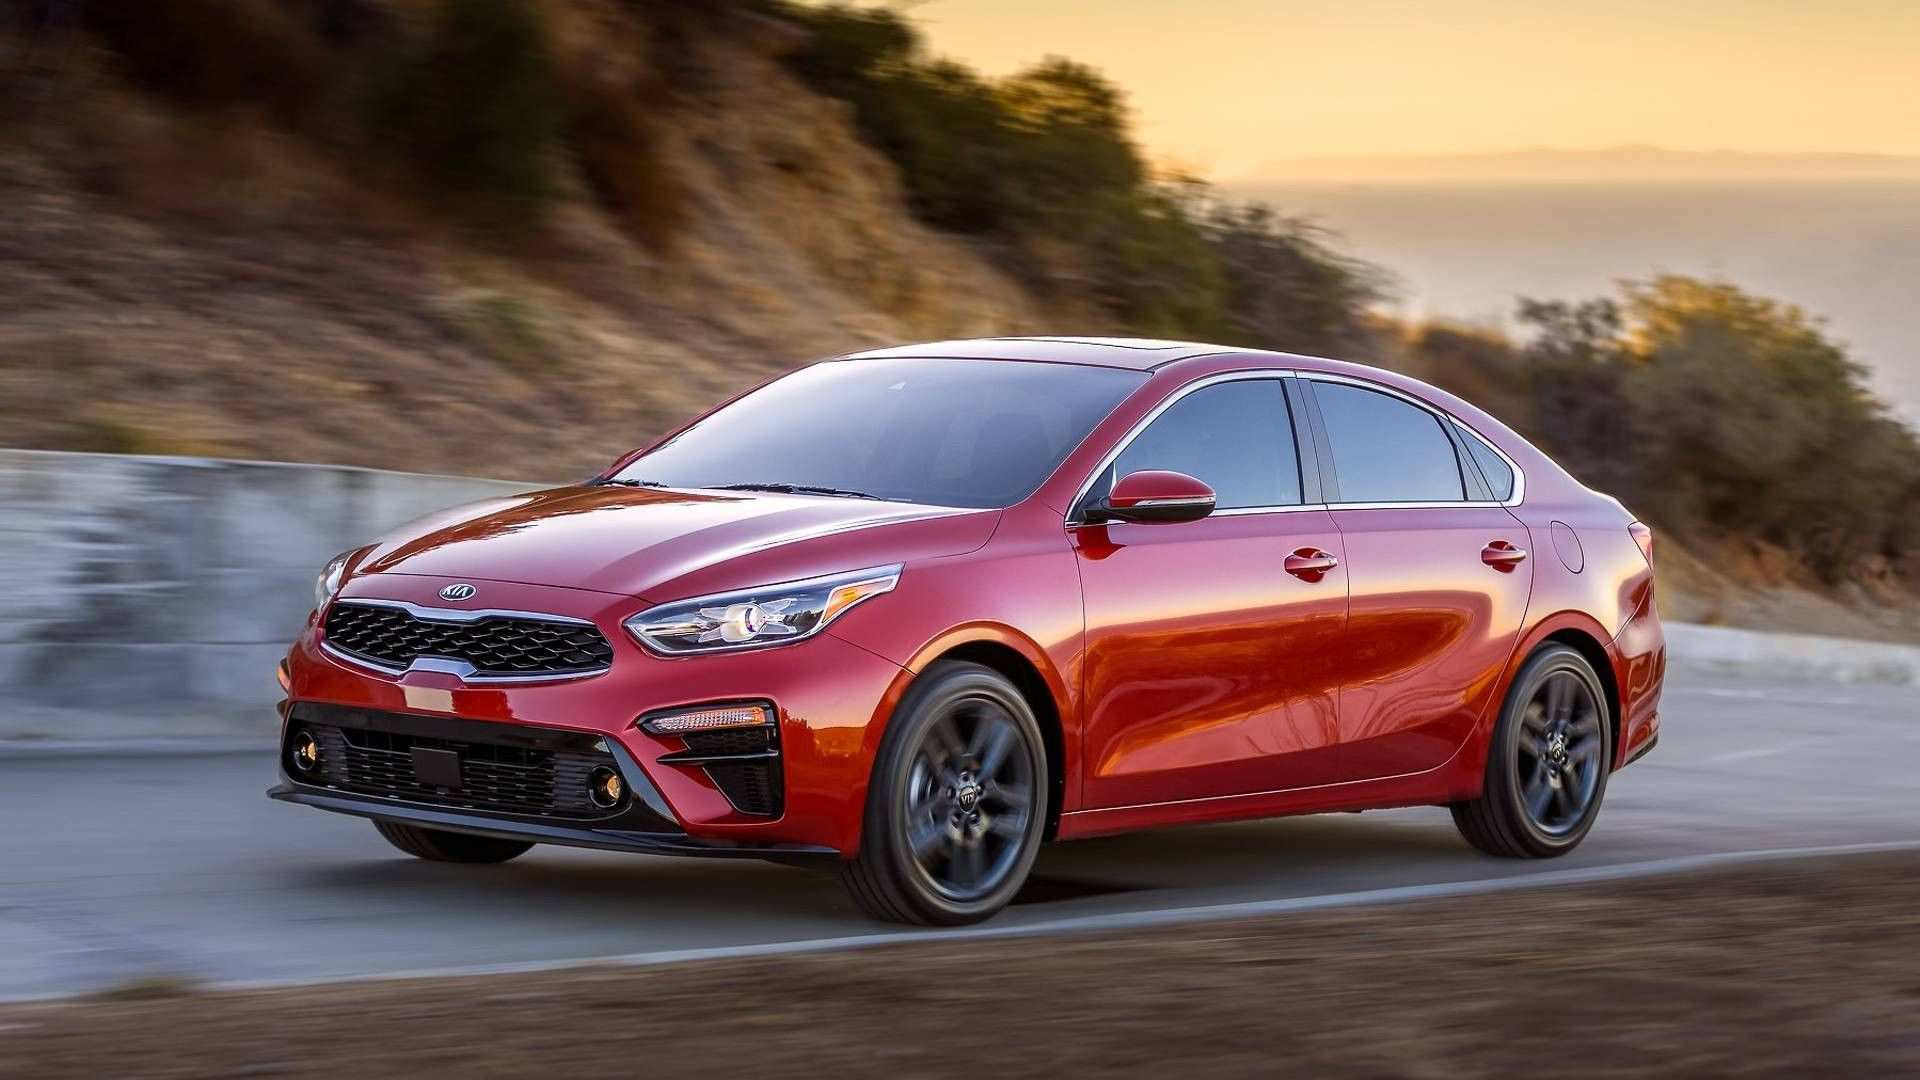 31 Best Kia Cerato 2019 Price In Egypt Redesign And Review